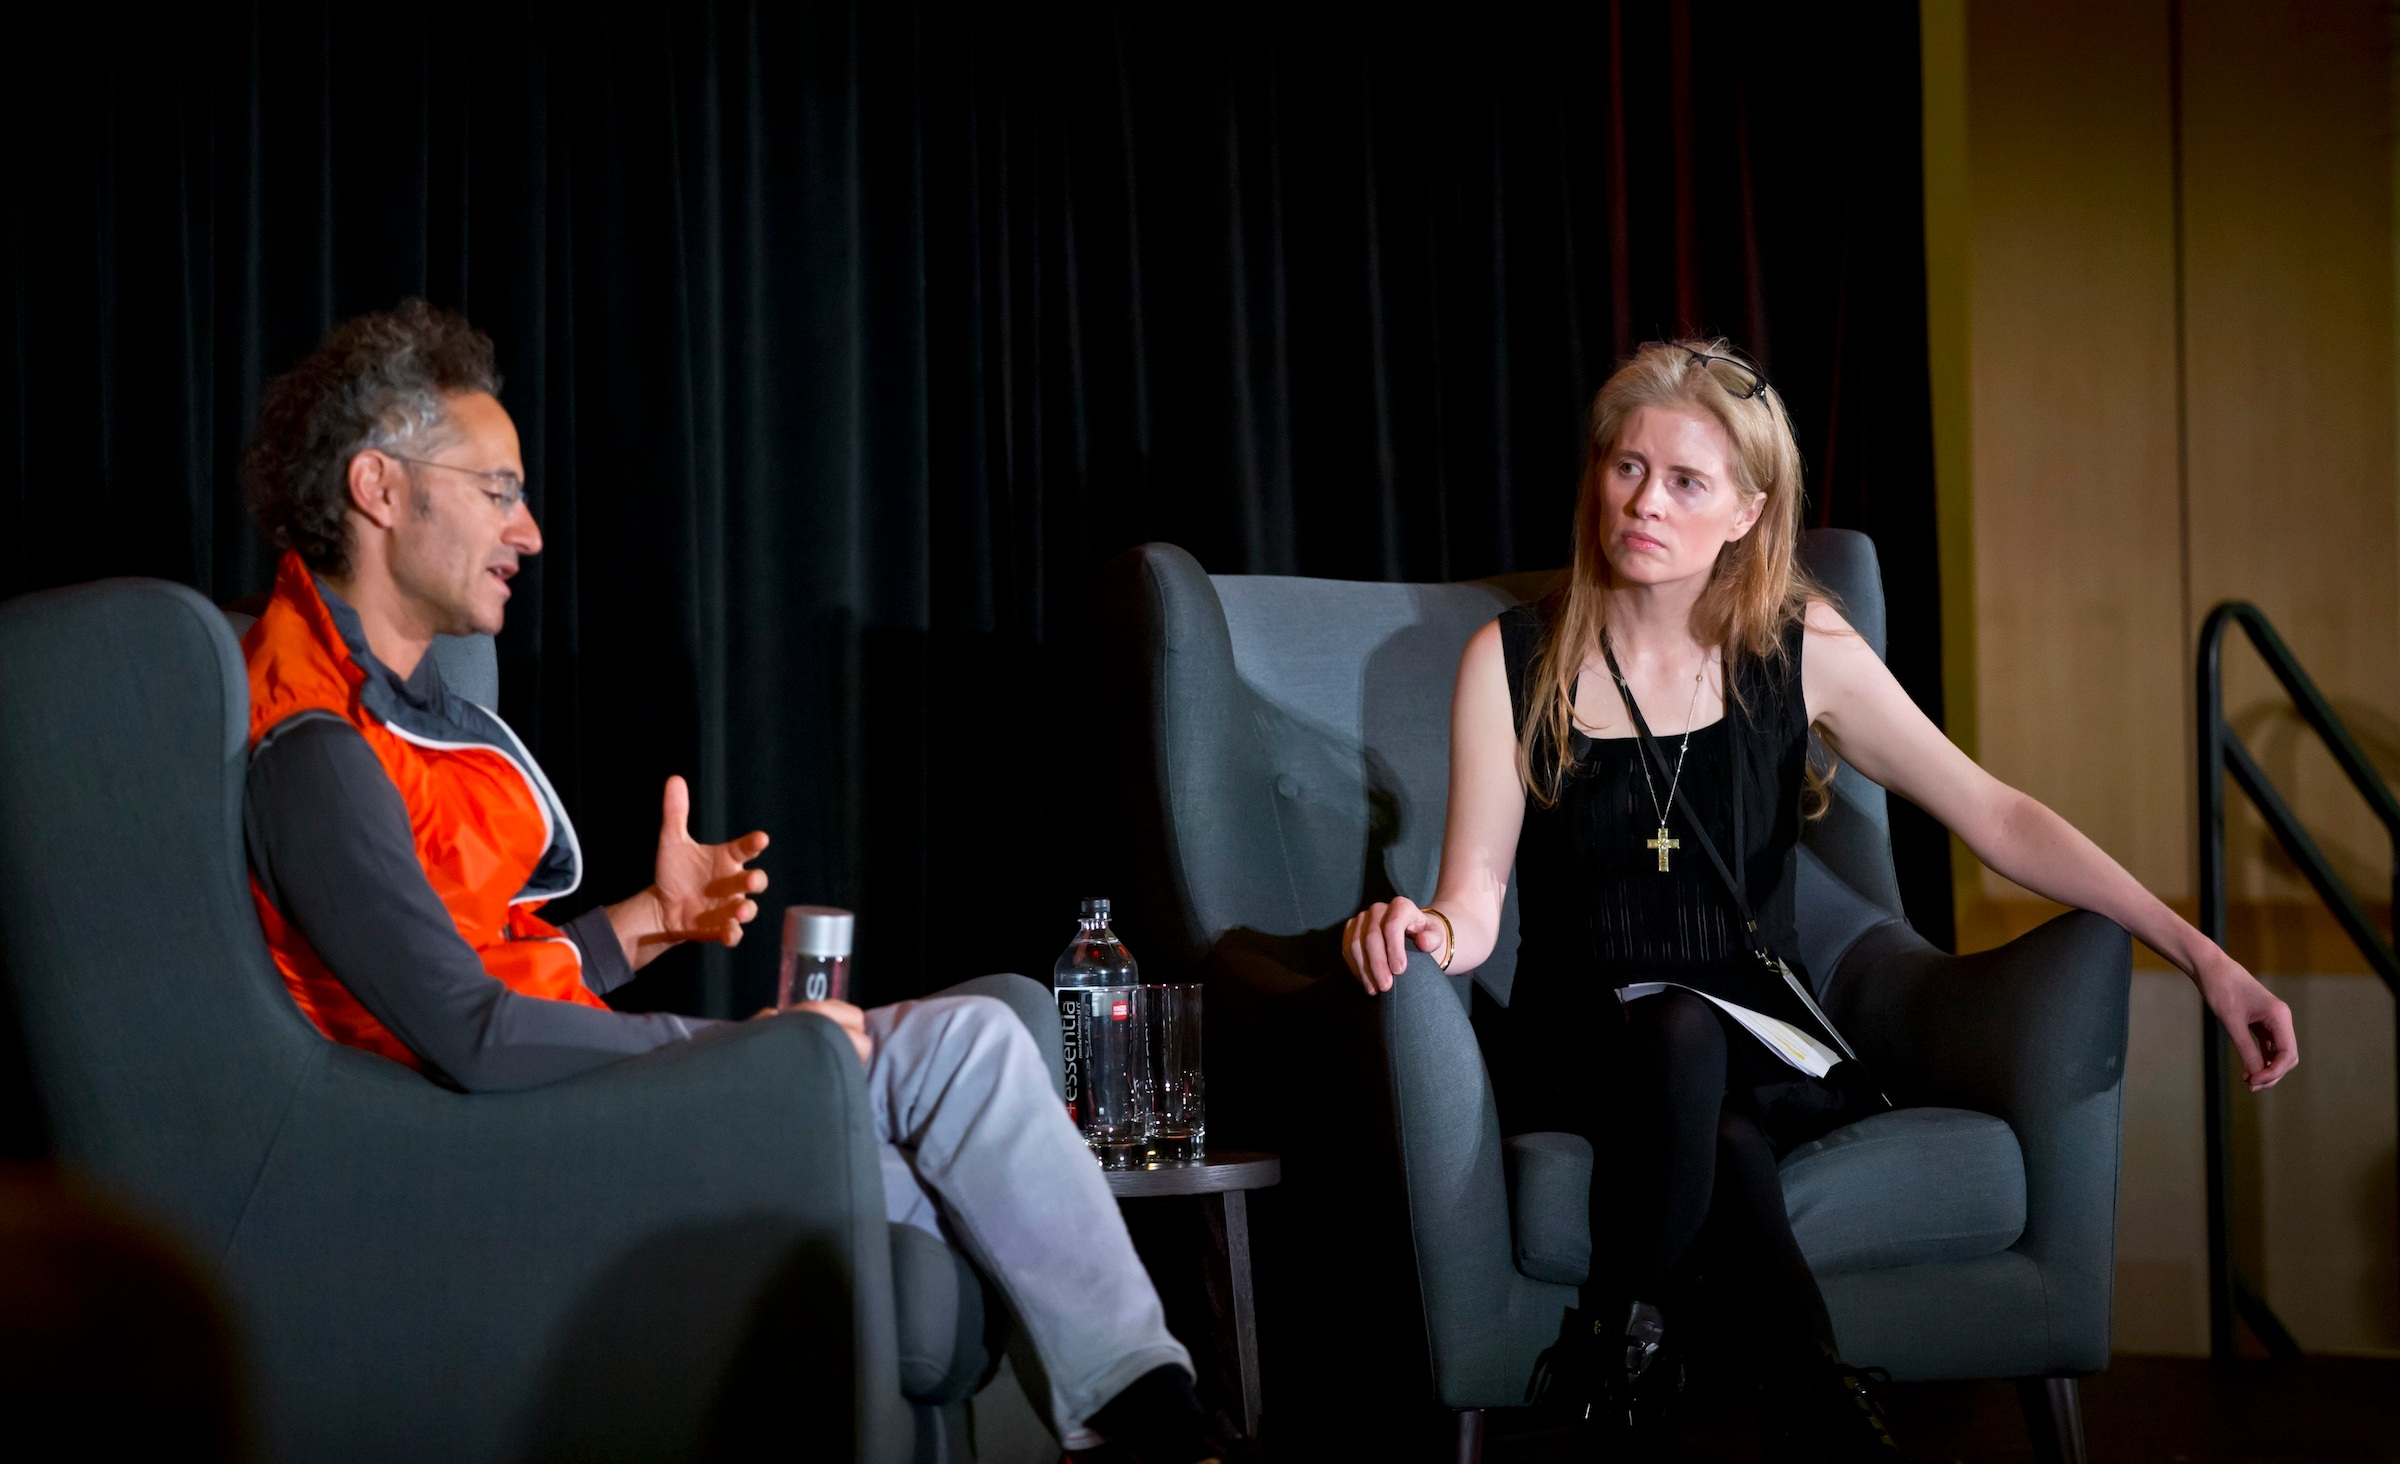 Laura interviewing Alex Karp, CEO of Palantir